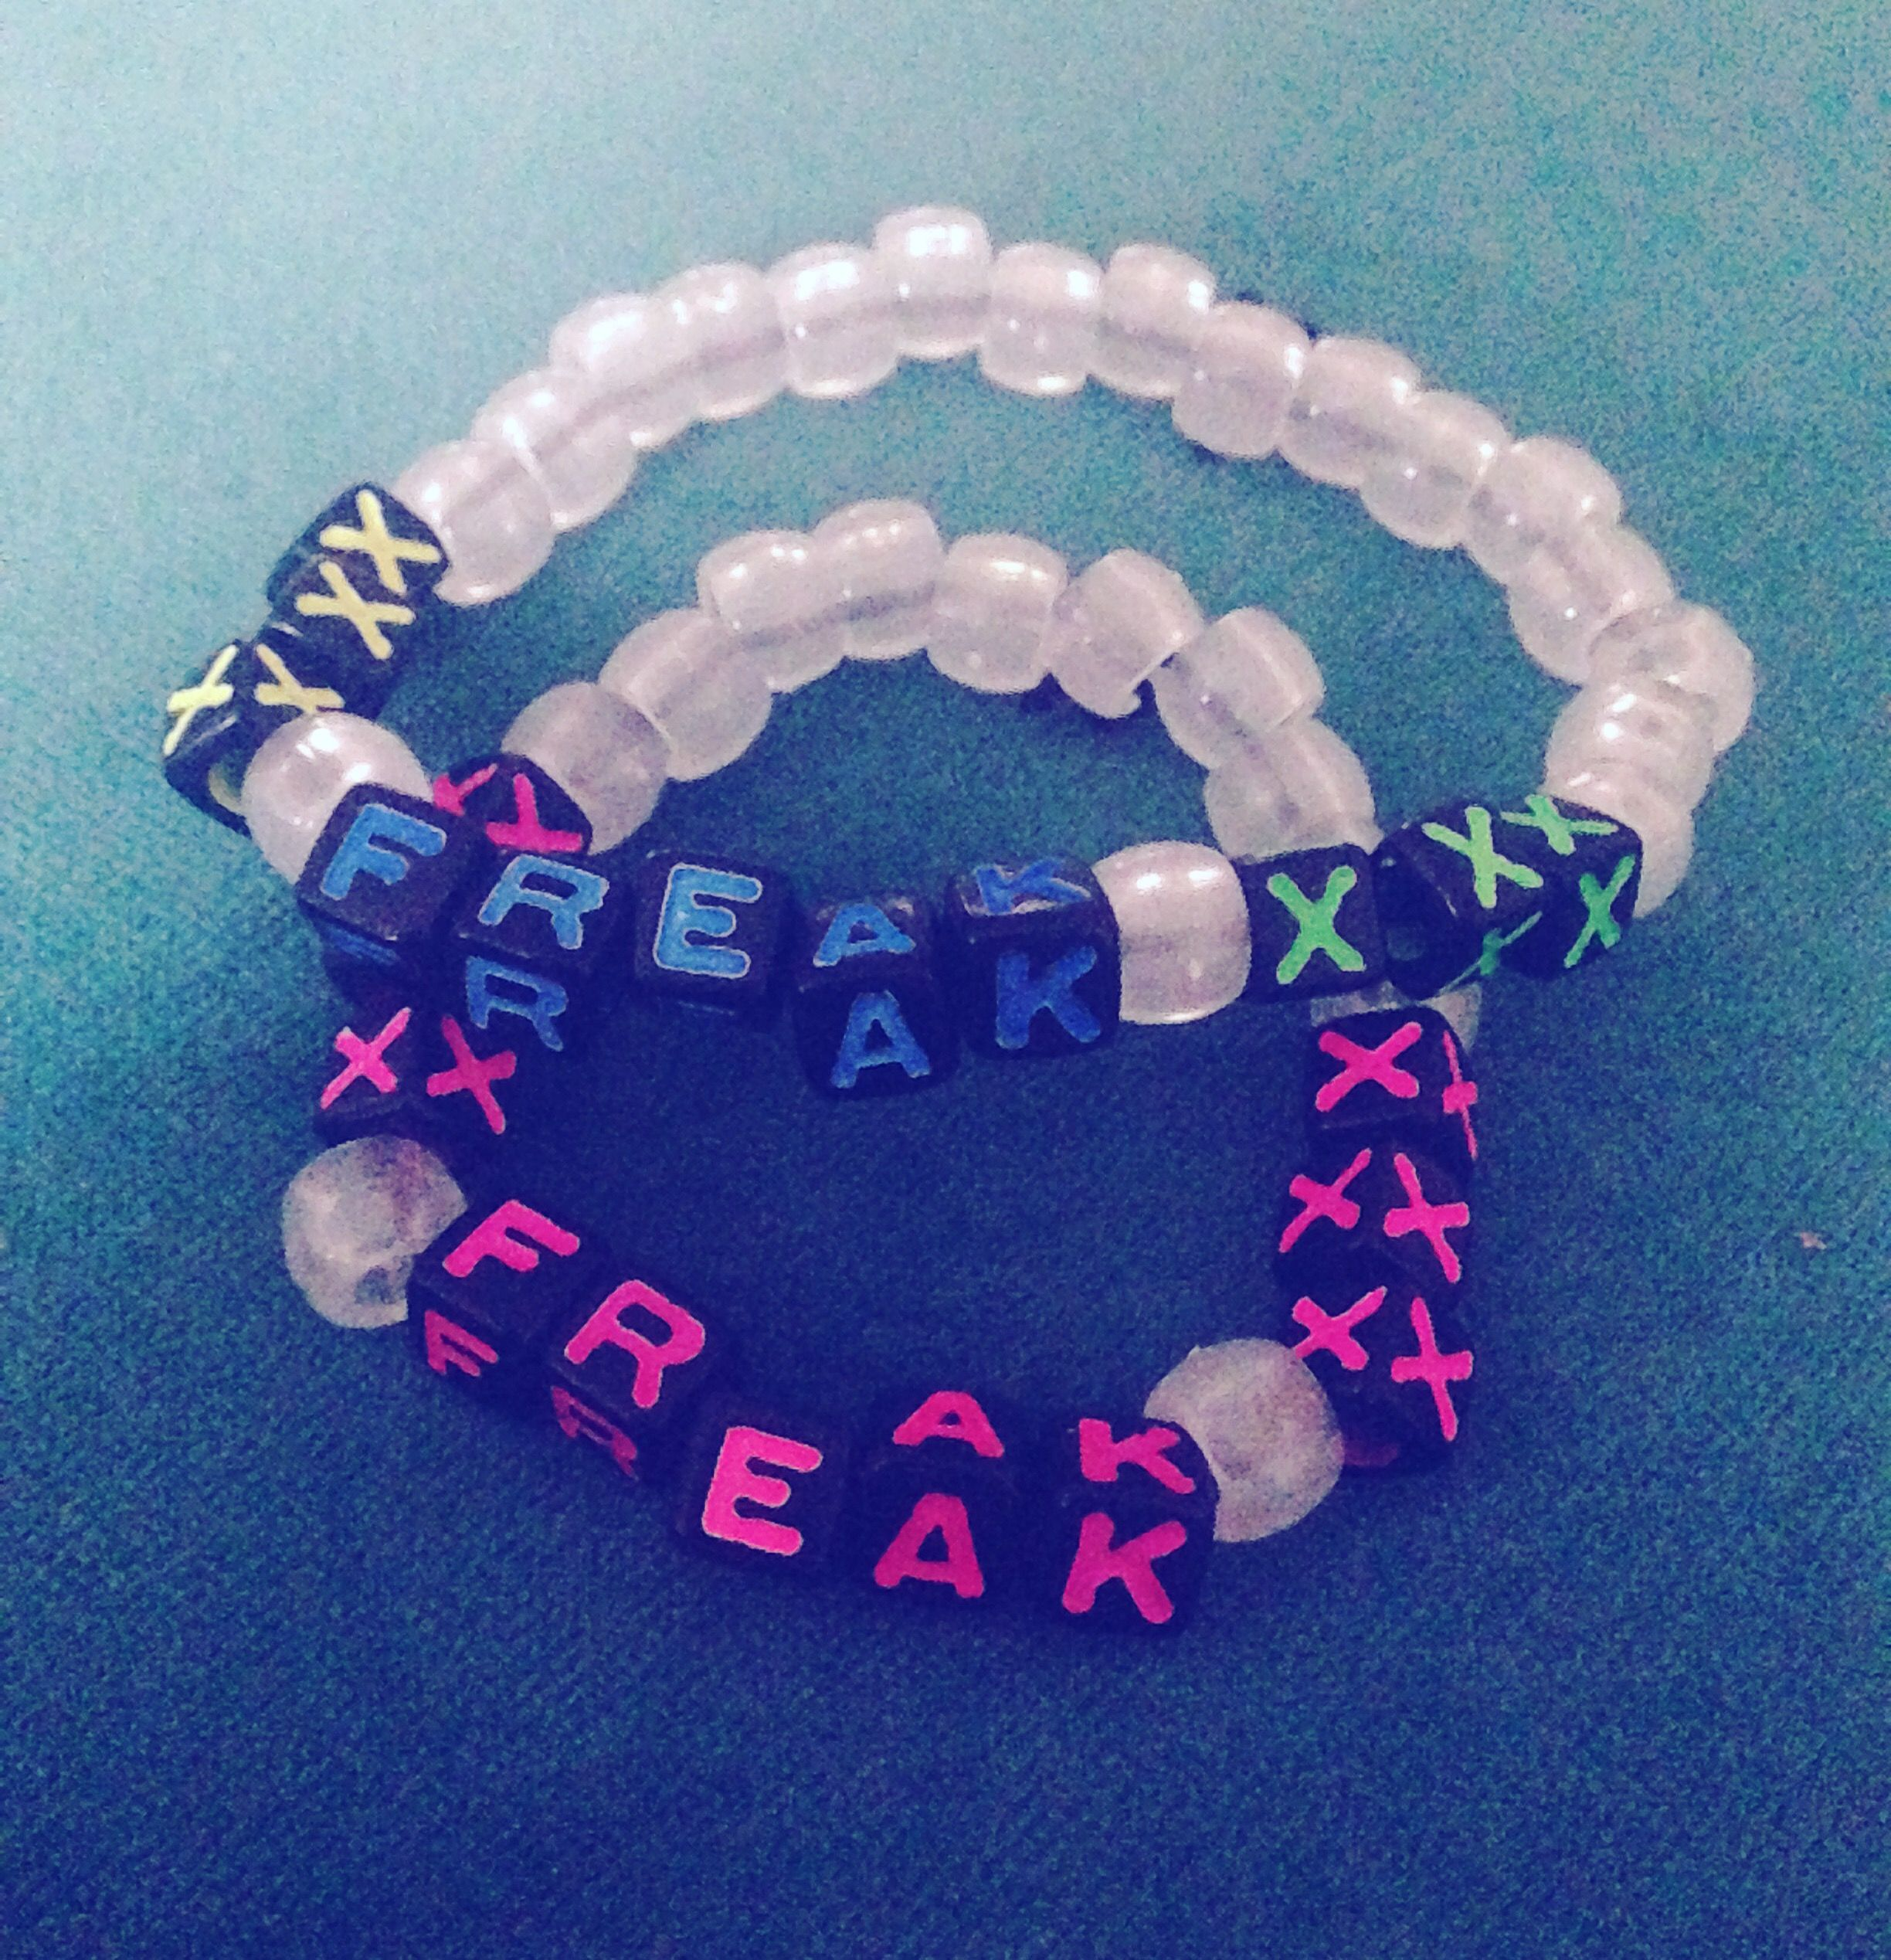 and hers kandi ravers music freak bracelets festival heyy pin his rave bracelet